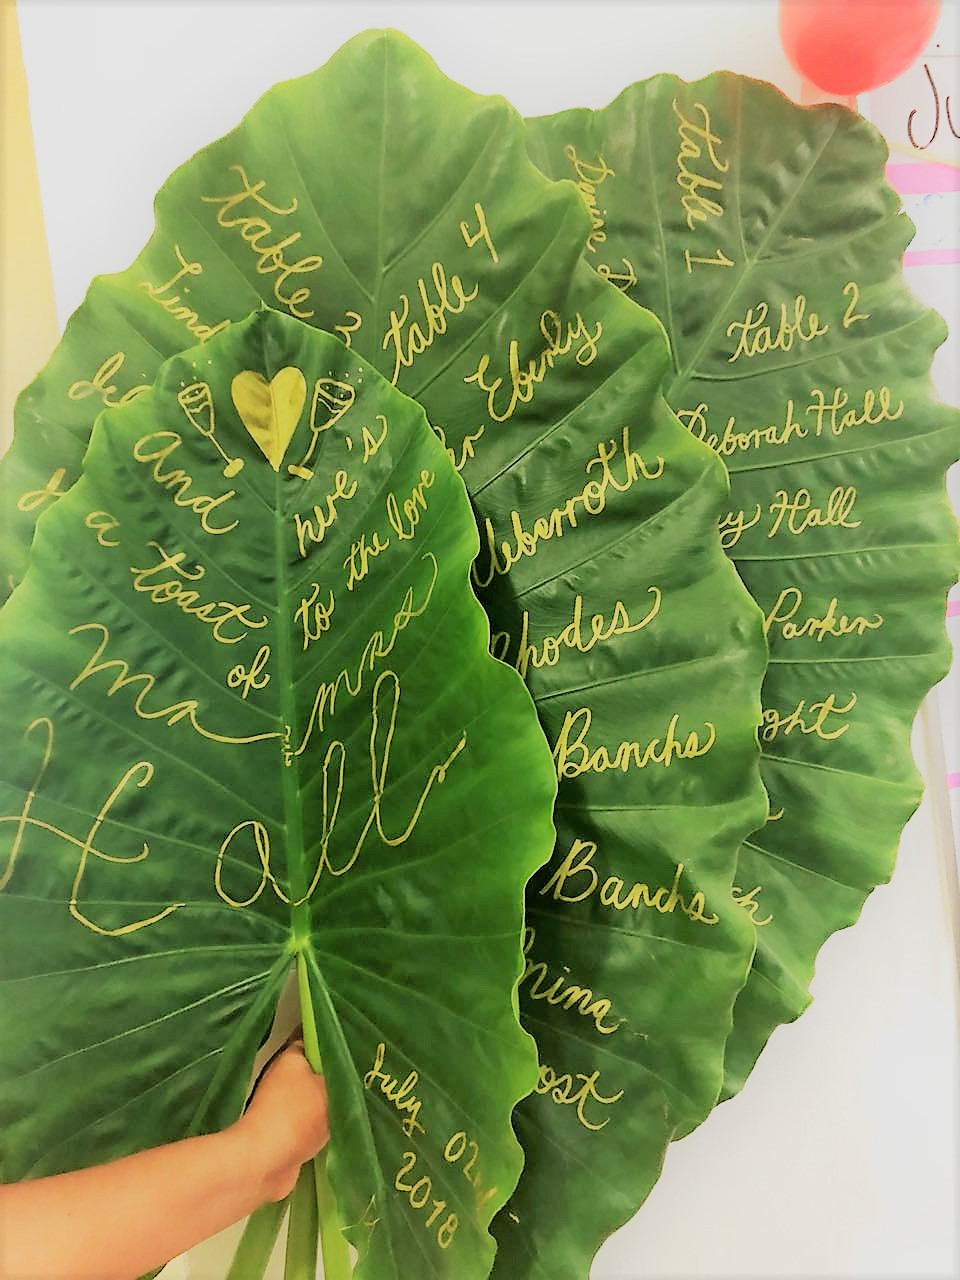 Monstera Leave Seating Chart With Hand Written Names And Table Numbers2